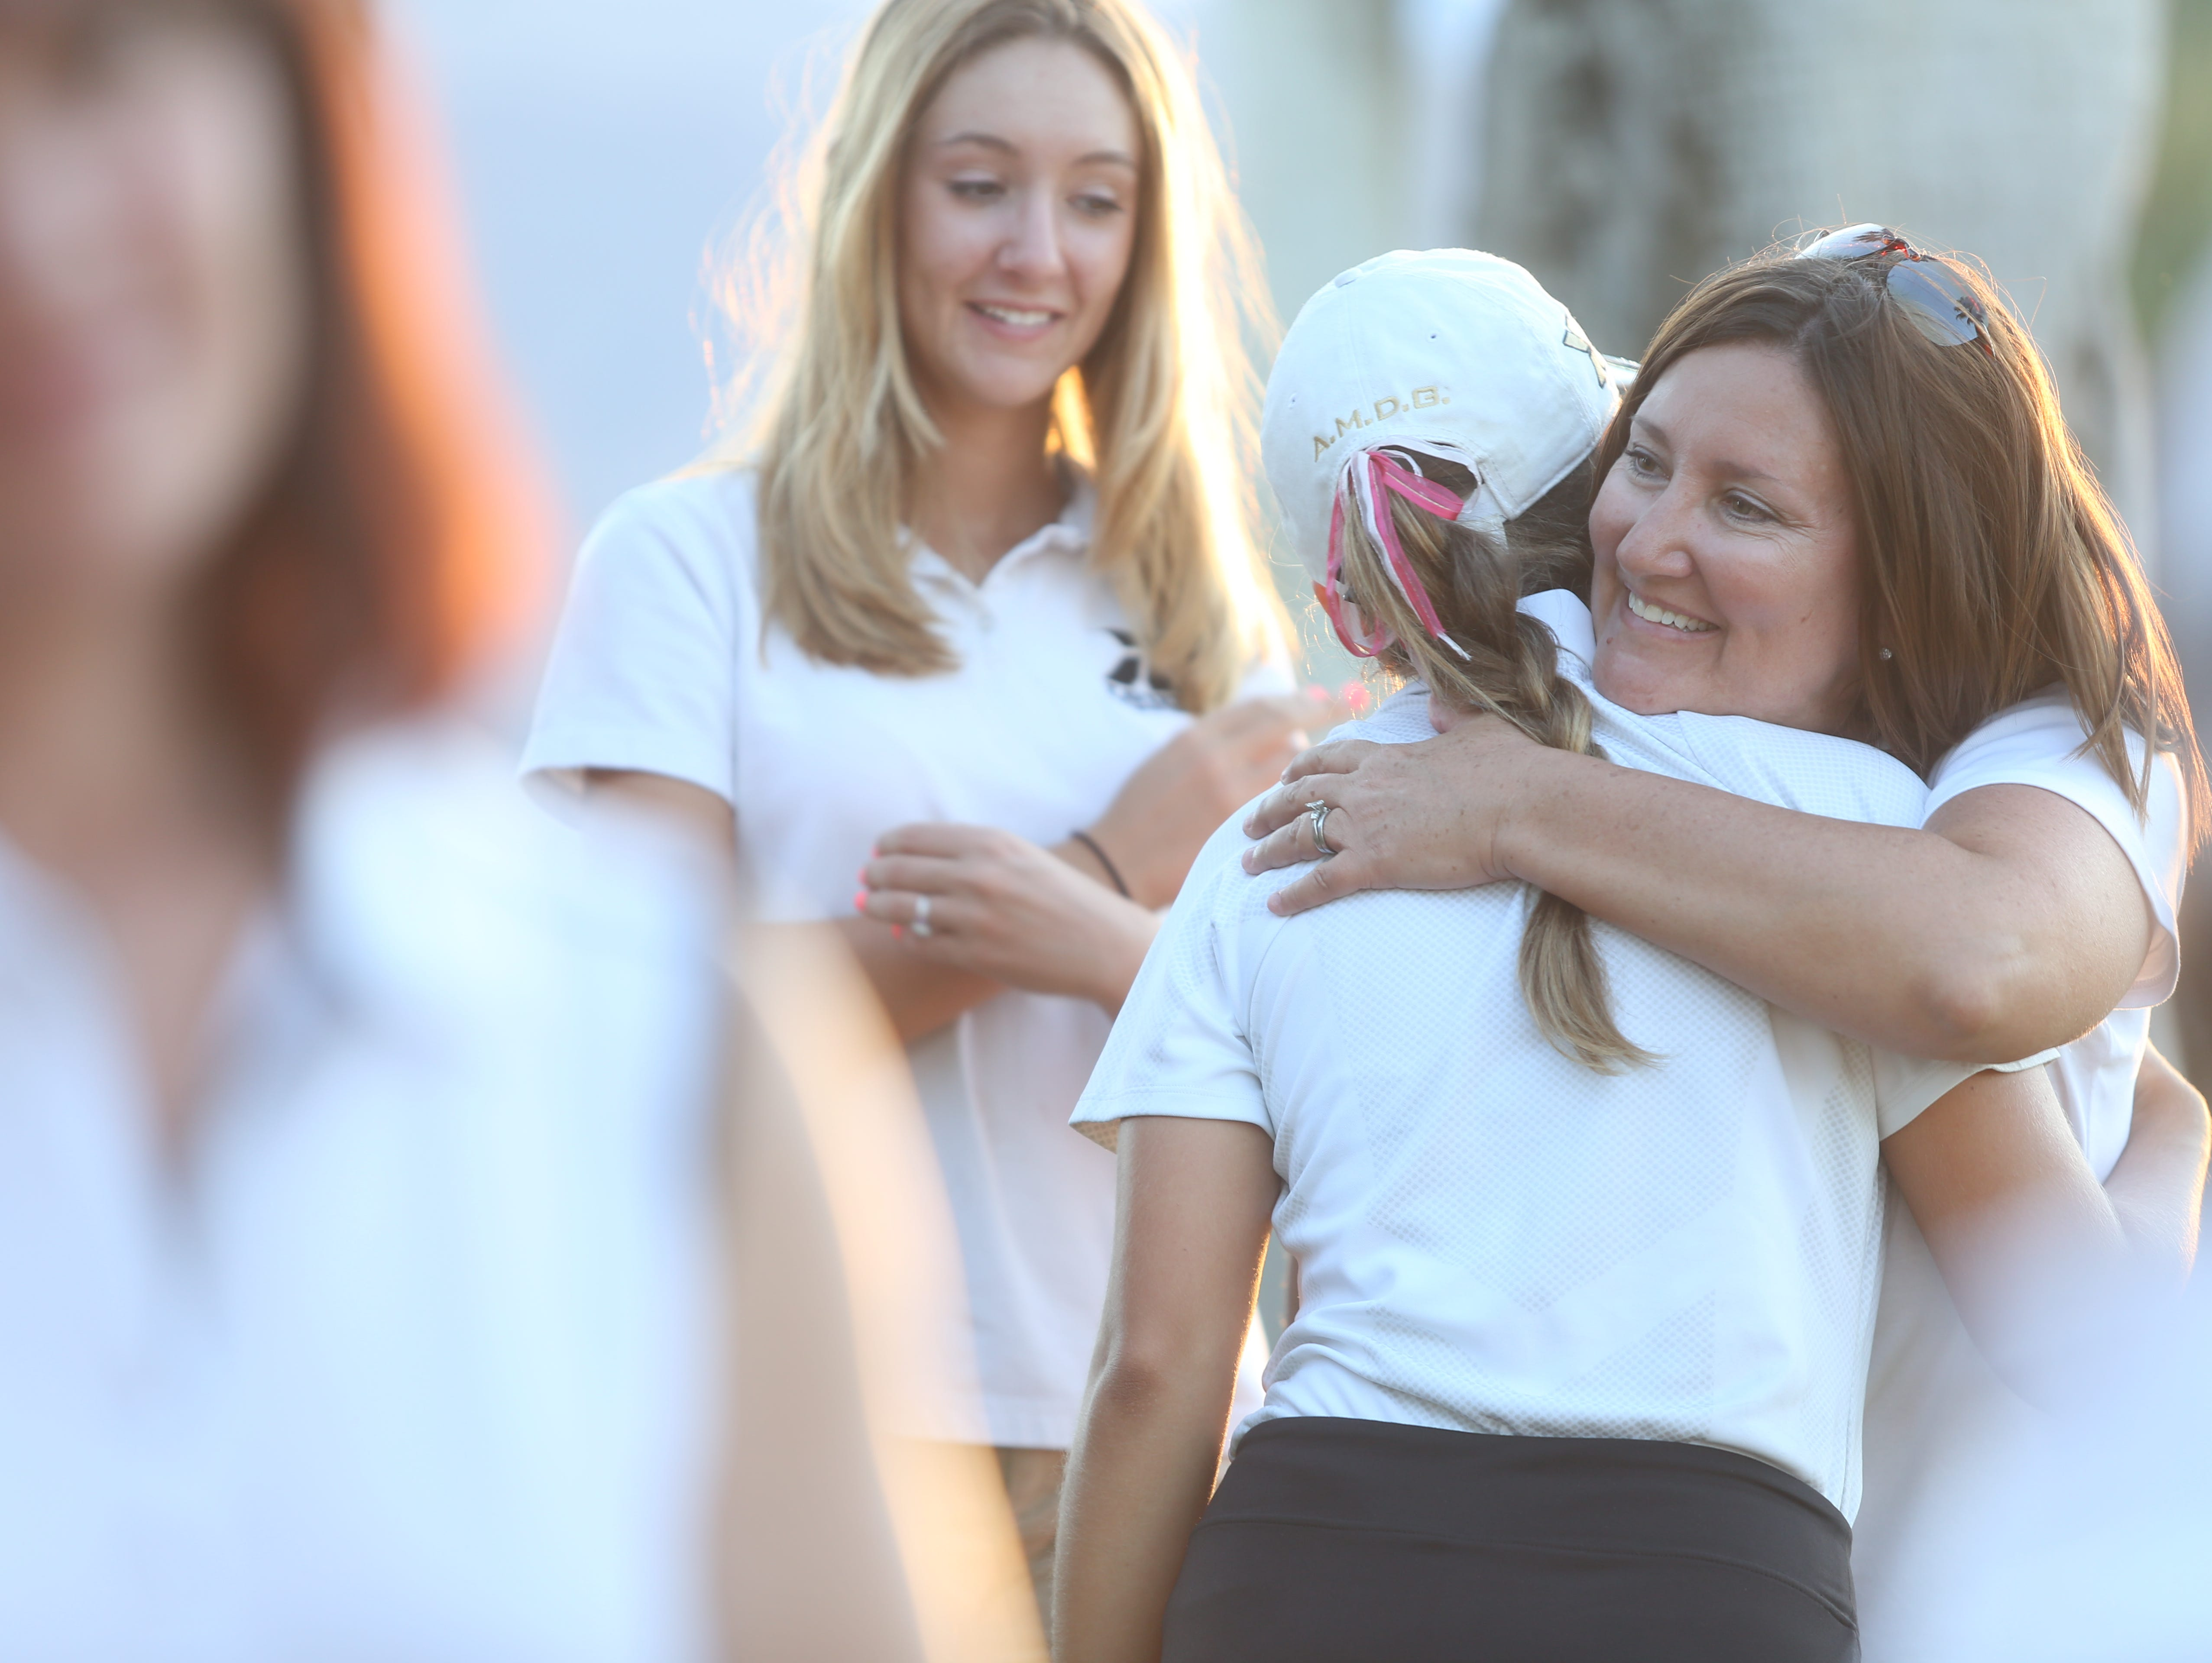 Vera Markevich, of Xavier Prep, gets hugs after becoming the DVL champion in girls golf she won her round at Desert Springs Resort Marriot in Palm Desert on October 22, 2015.